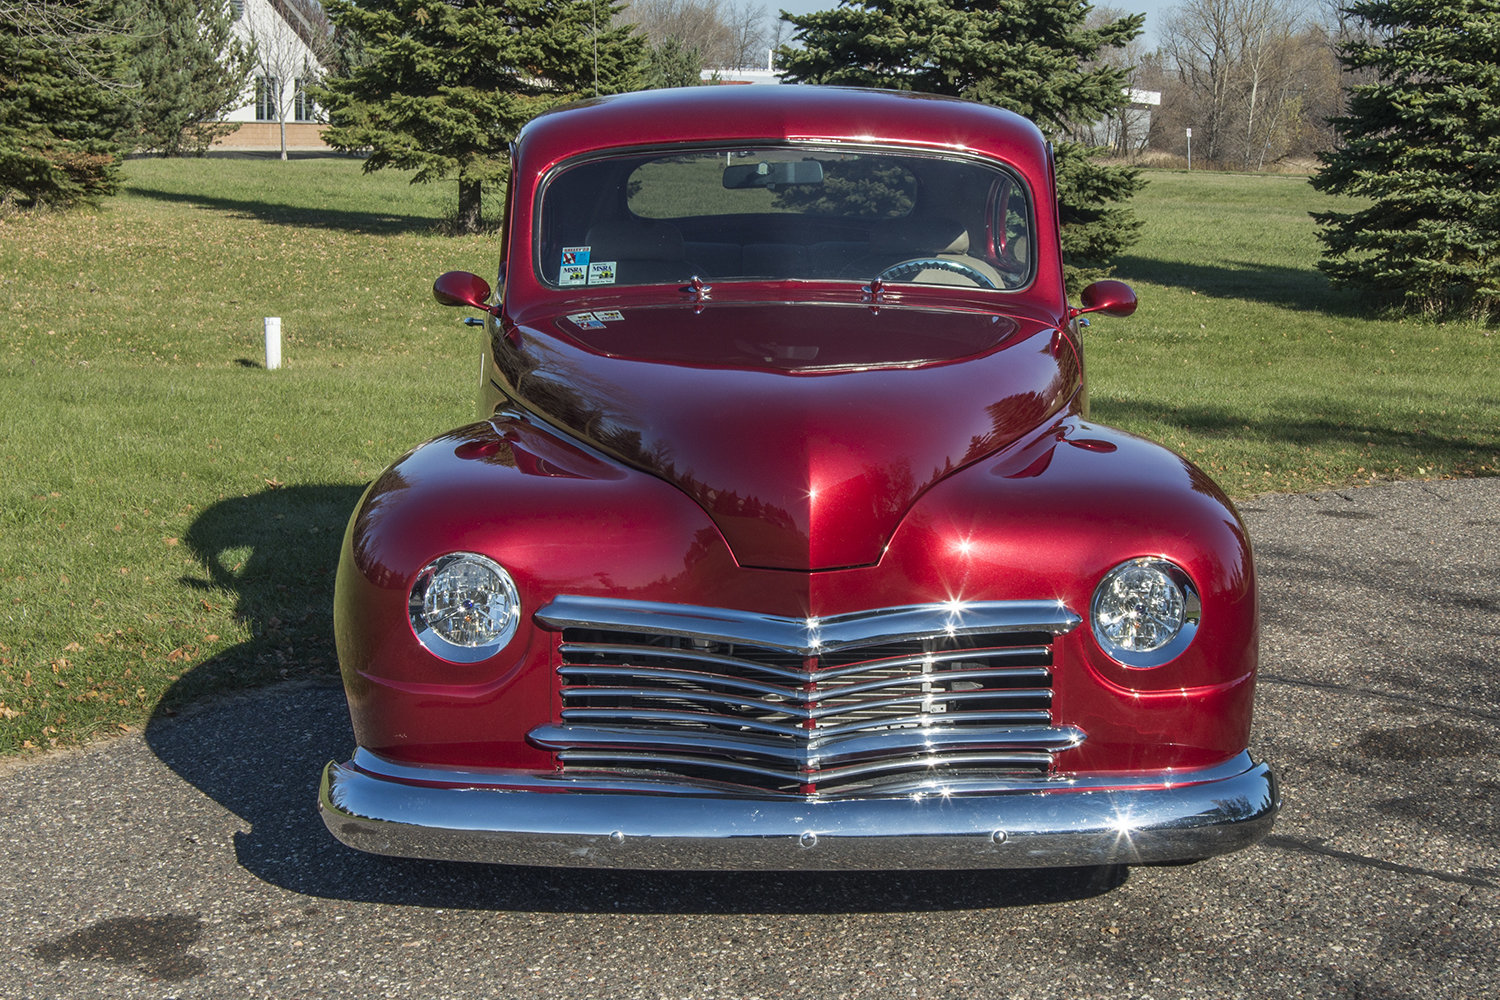 1946 plymouth deluxe club coupe classic car dealer rogers minnesota ellingson motorcars. Black Bedroom Furniture Sets. Home Design Ideas